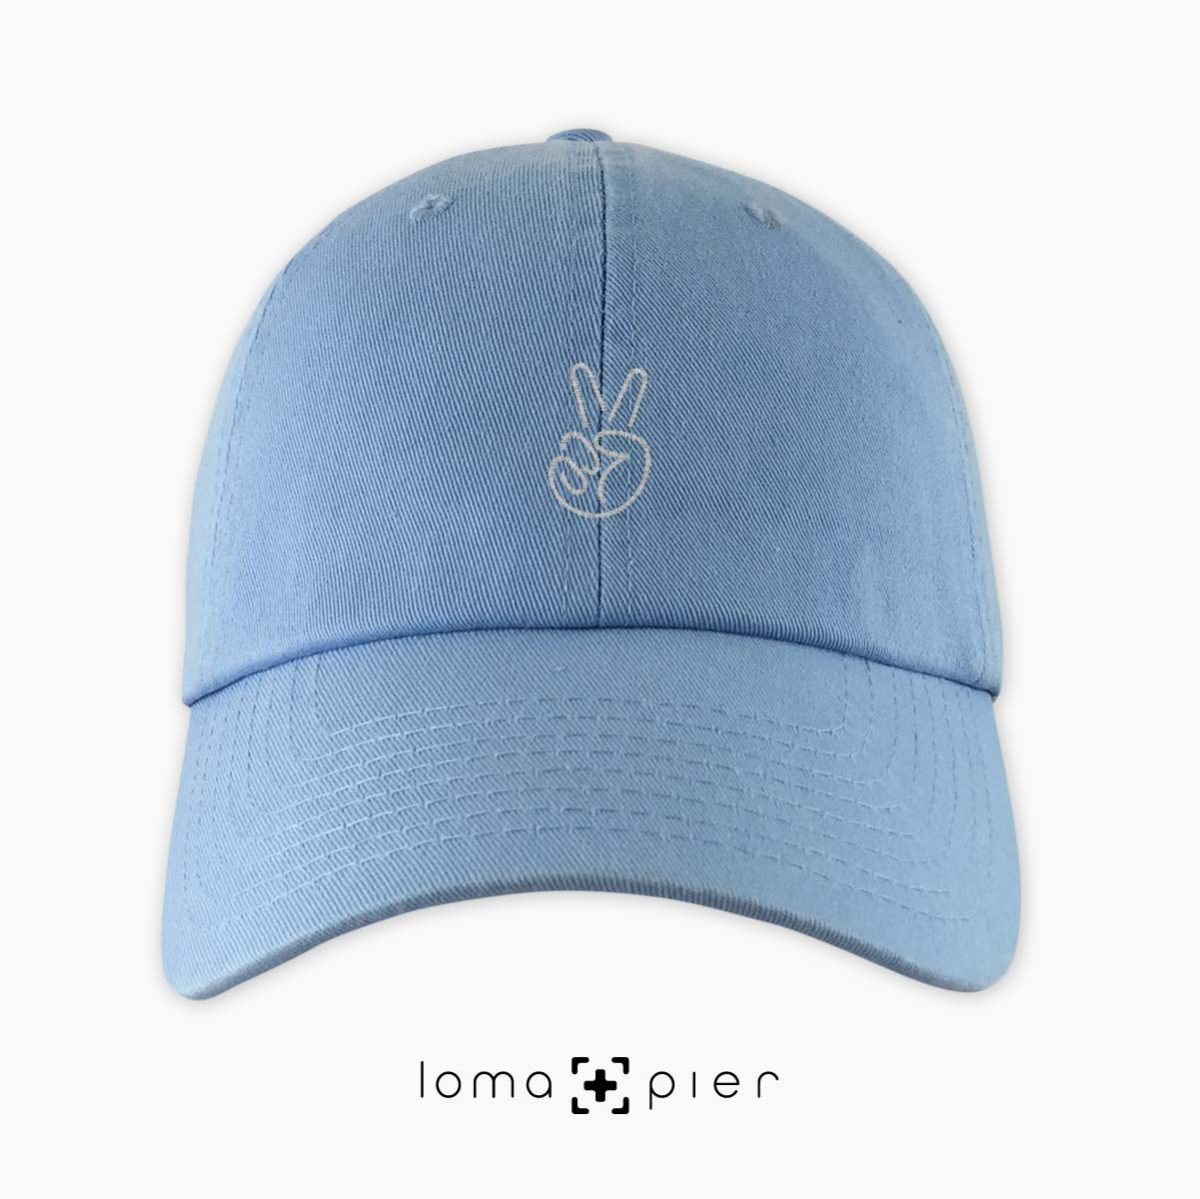 PEACE SIGN HAND icon embroidered on a baby blue unstructured dad hat with white thread by loma+pier hat store made in the USA